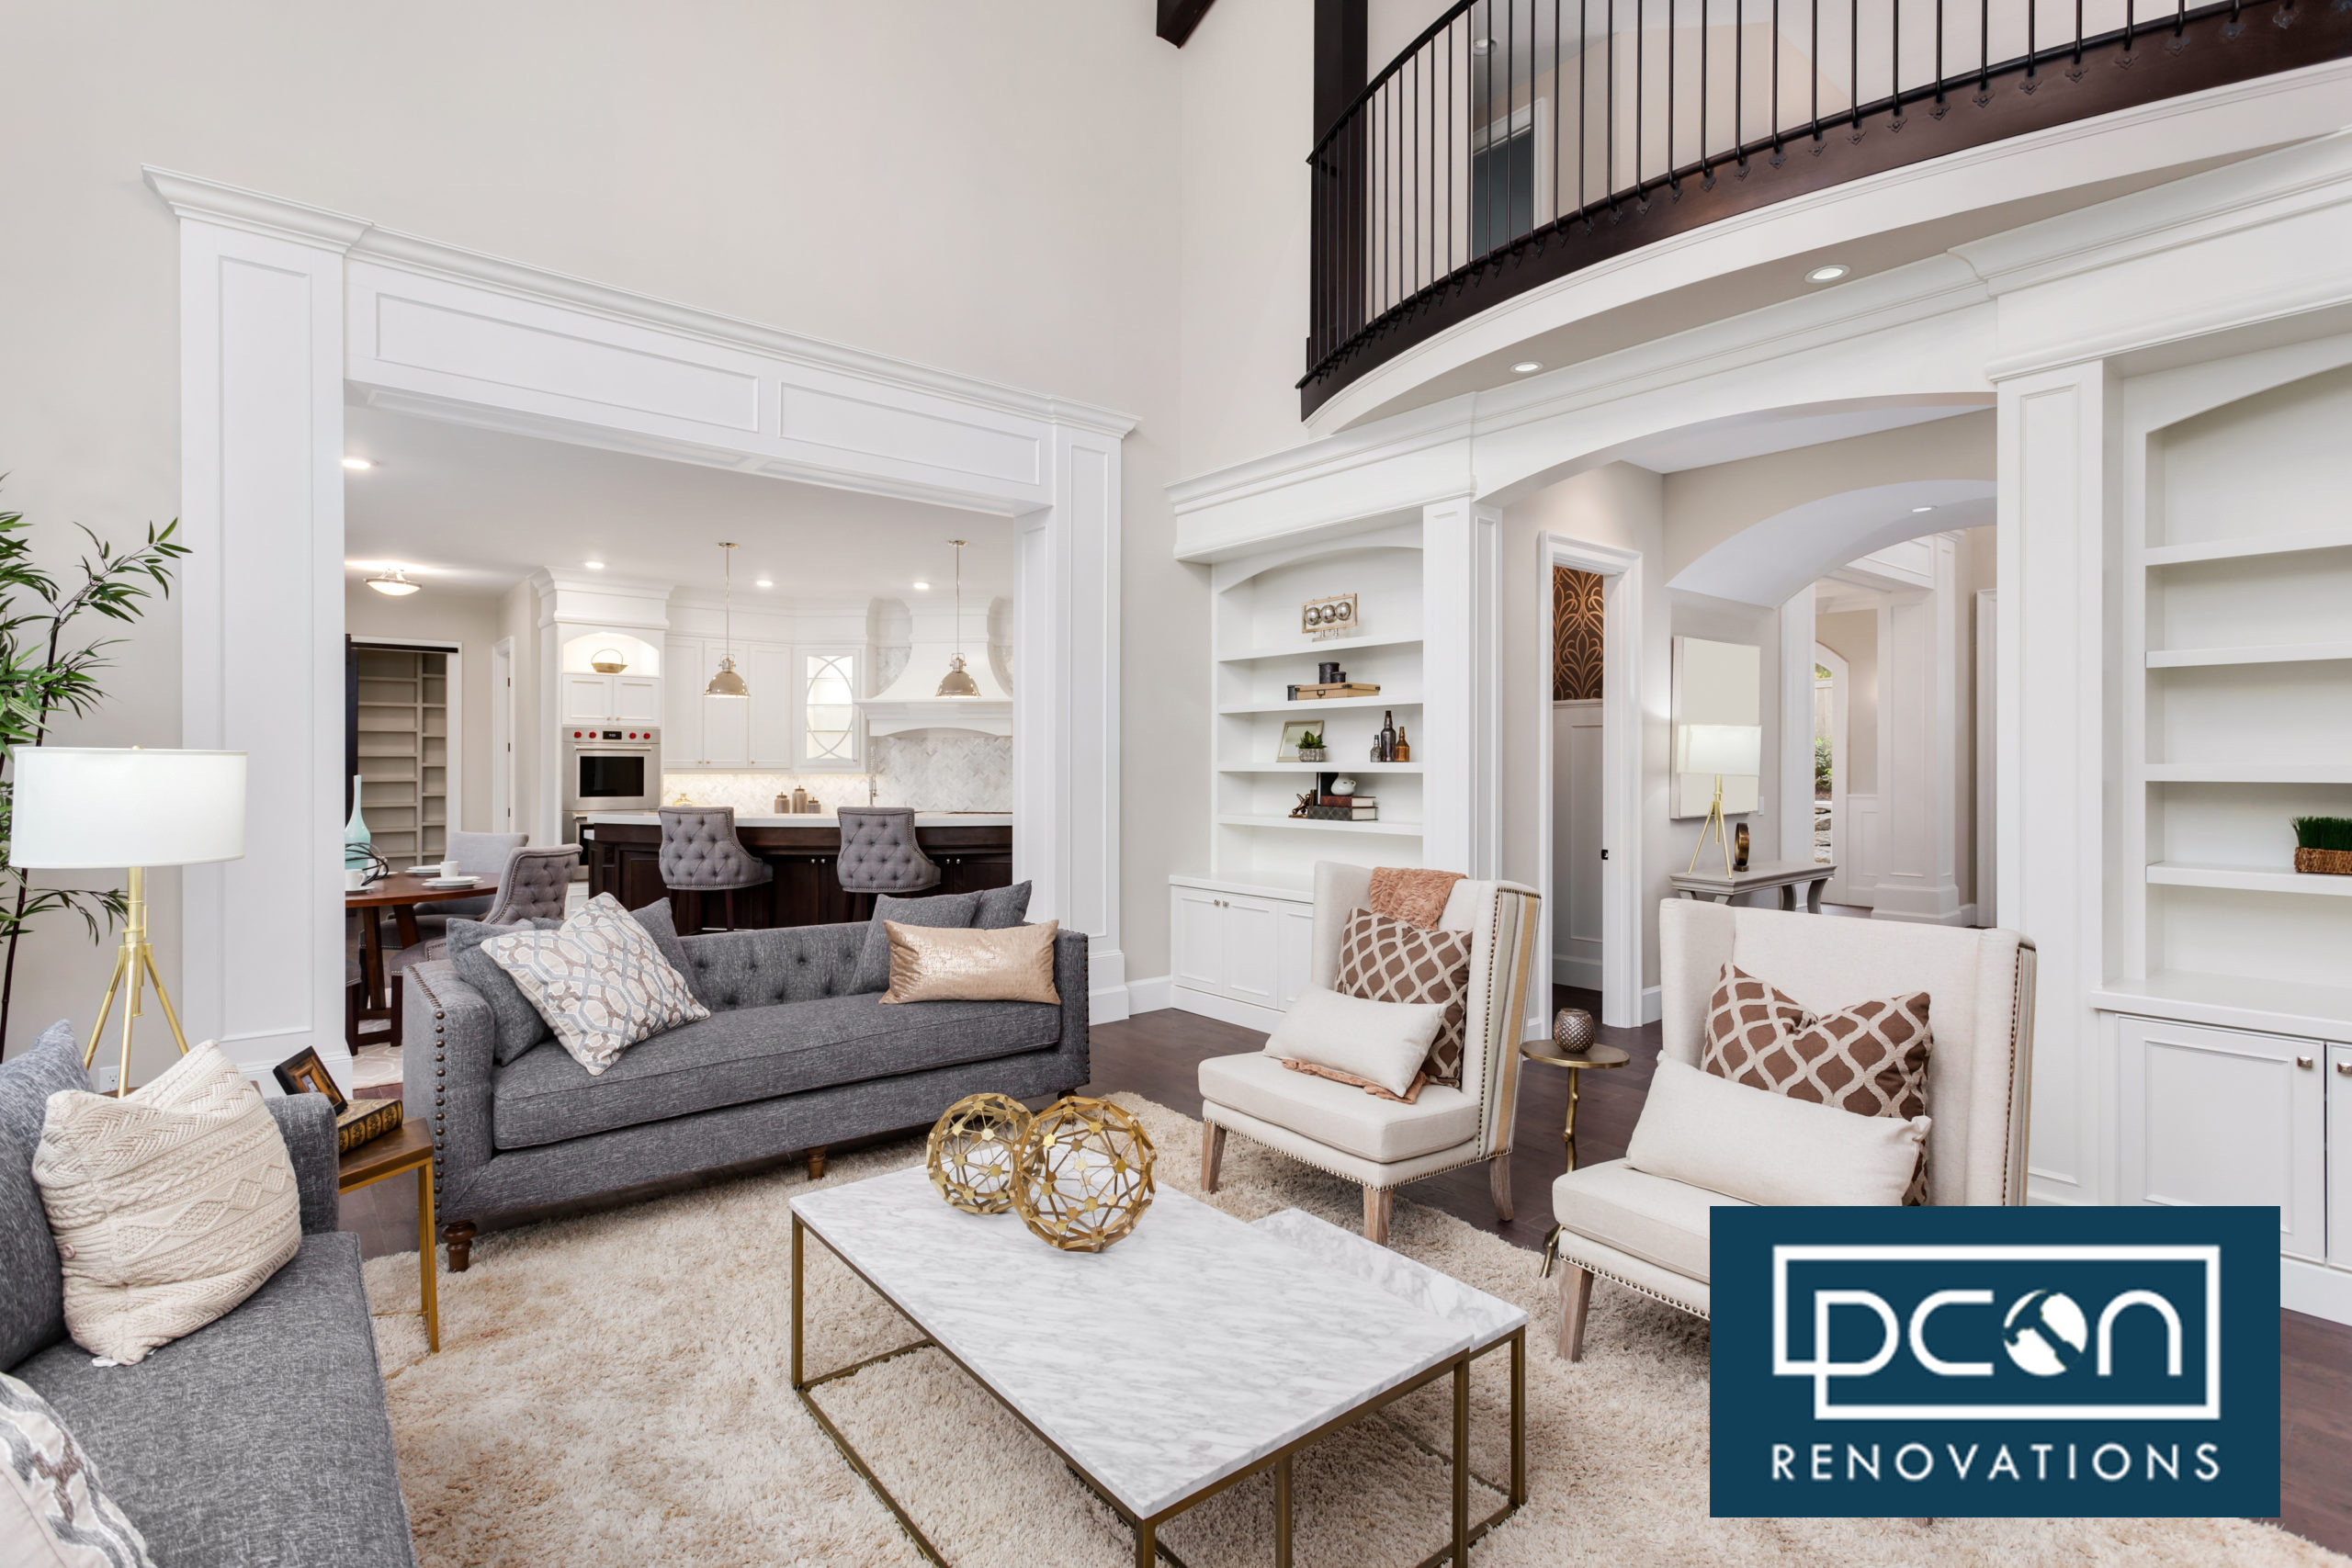 The Benefits of Hiring an Interior Designer for Your Home Renovation